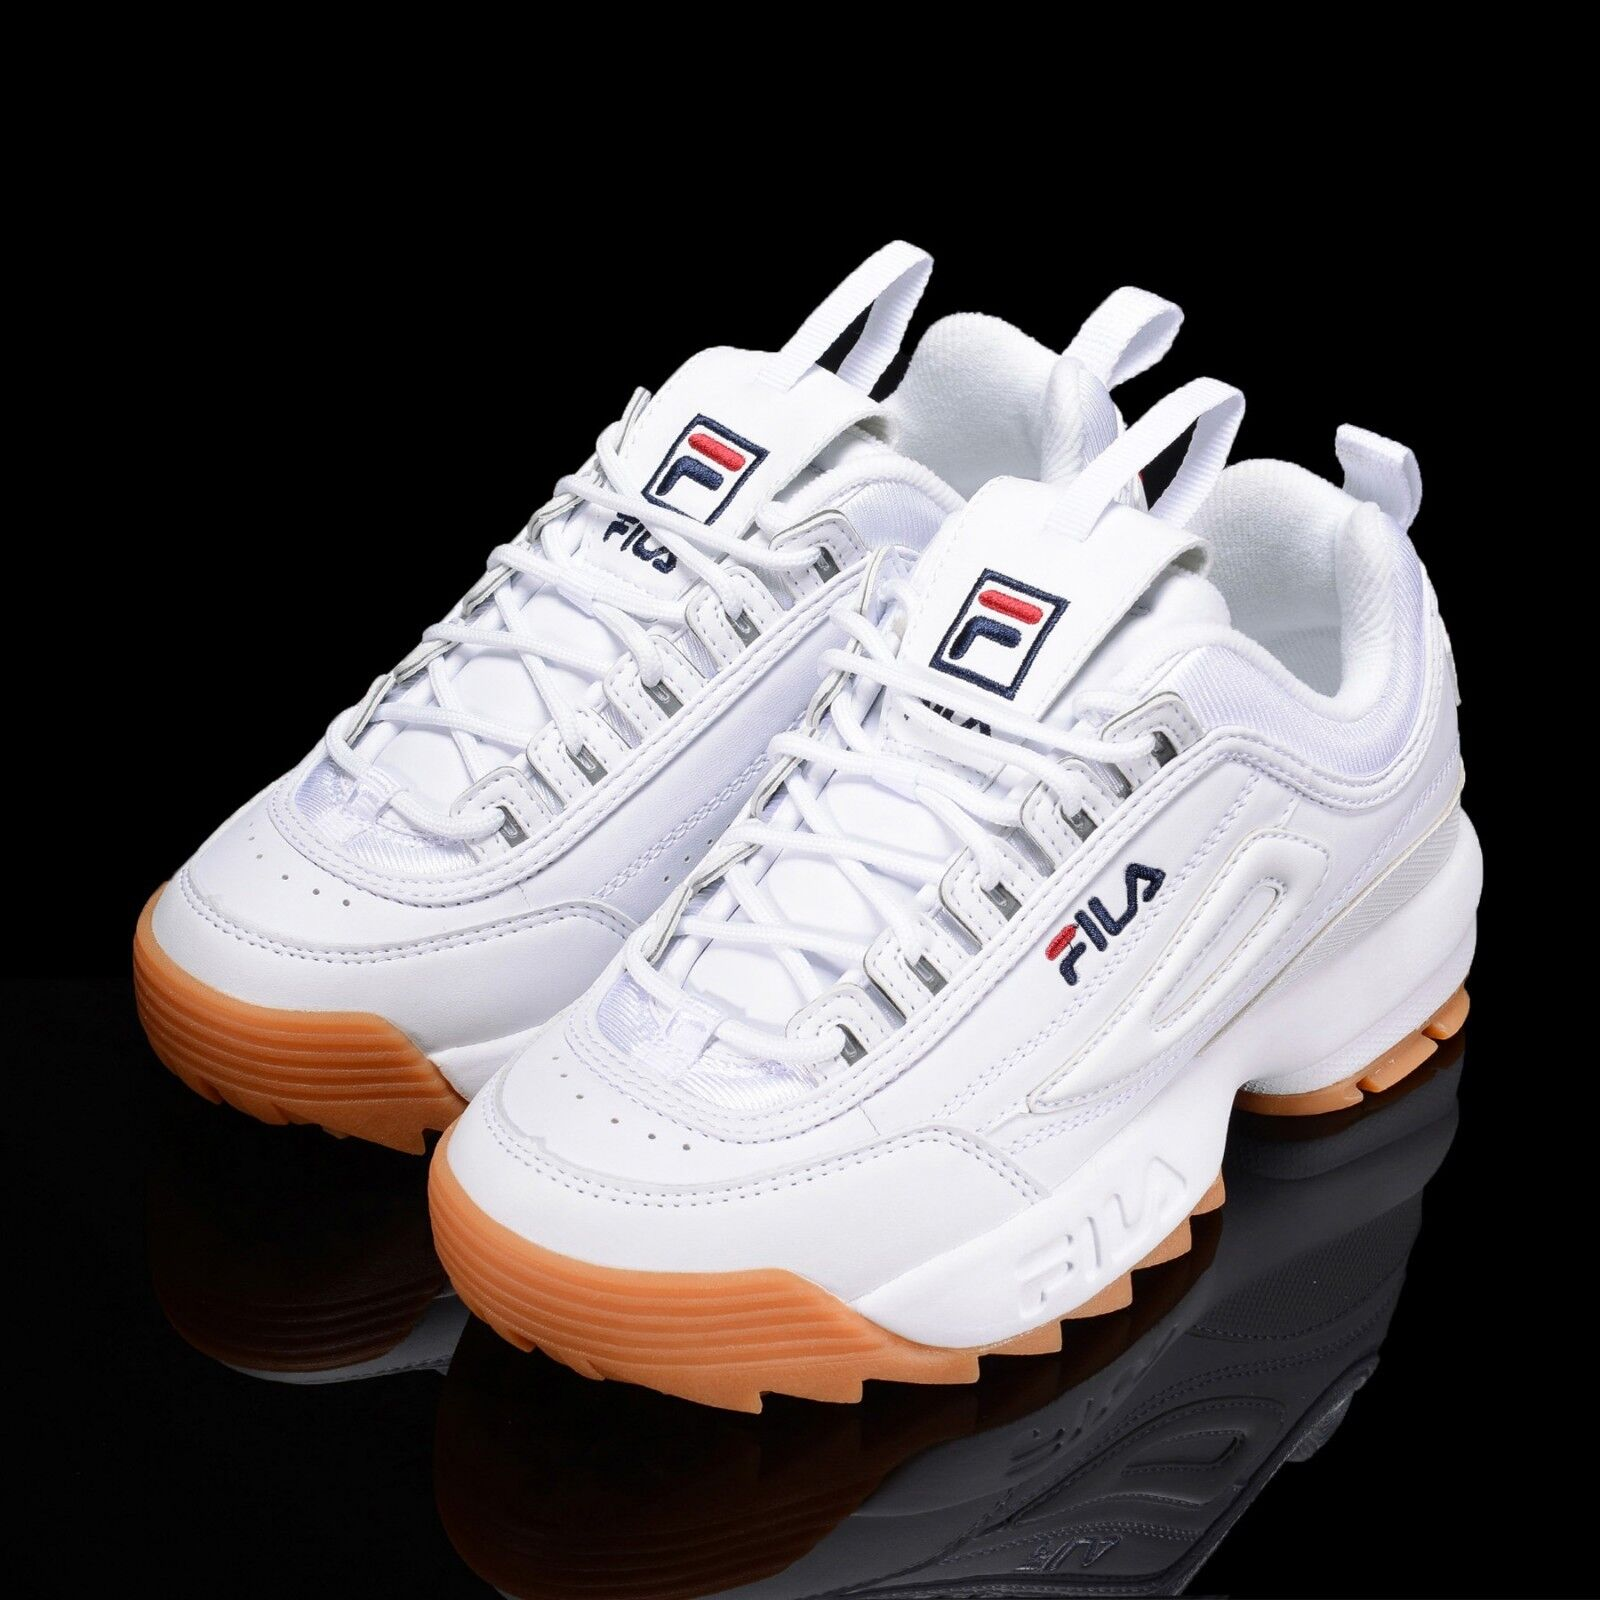 FILA Disruptor II 2 White Brown Shoes Running Unisex Comfortable Comfortable and good-looking